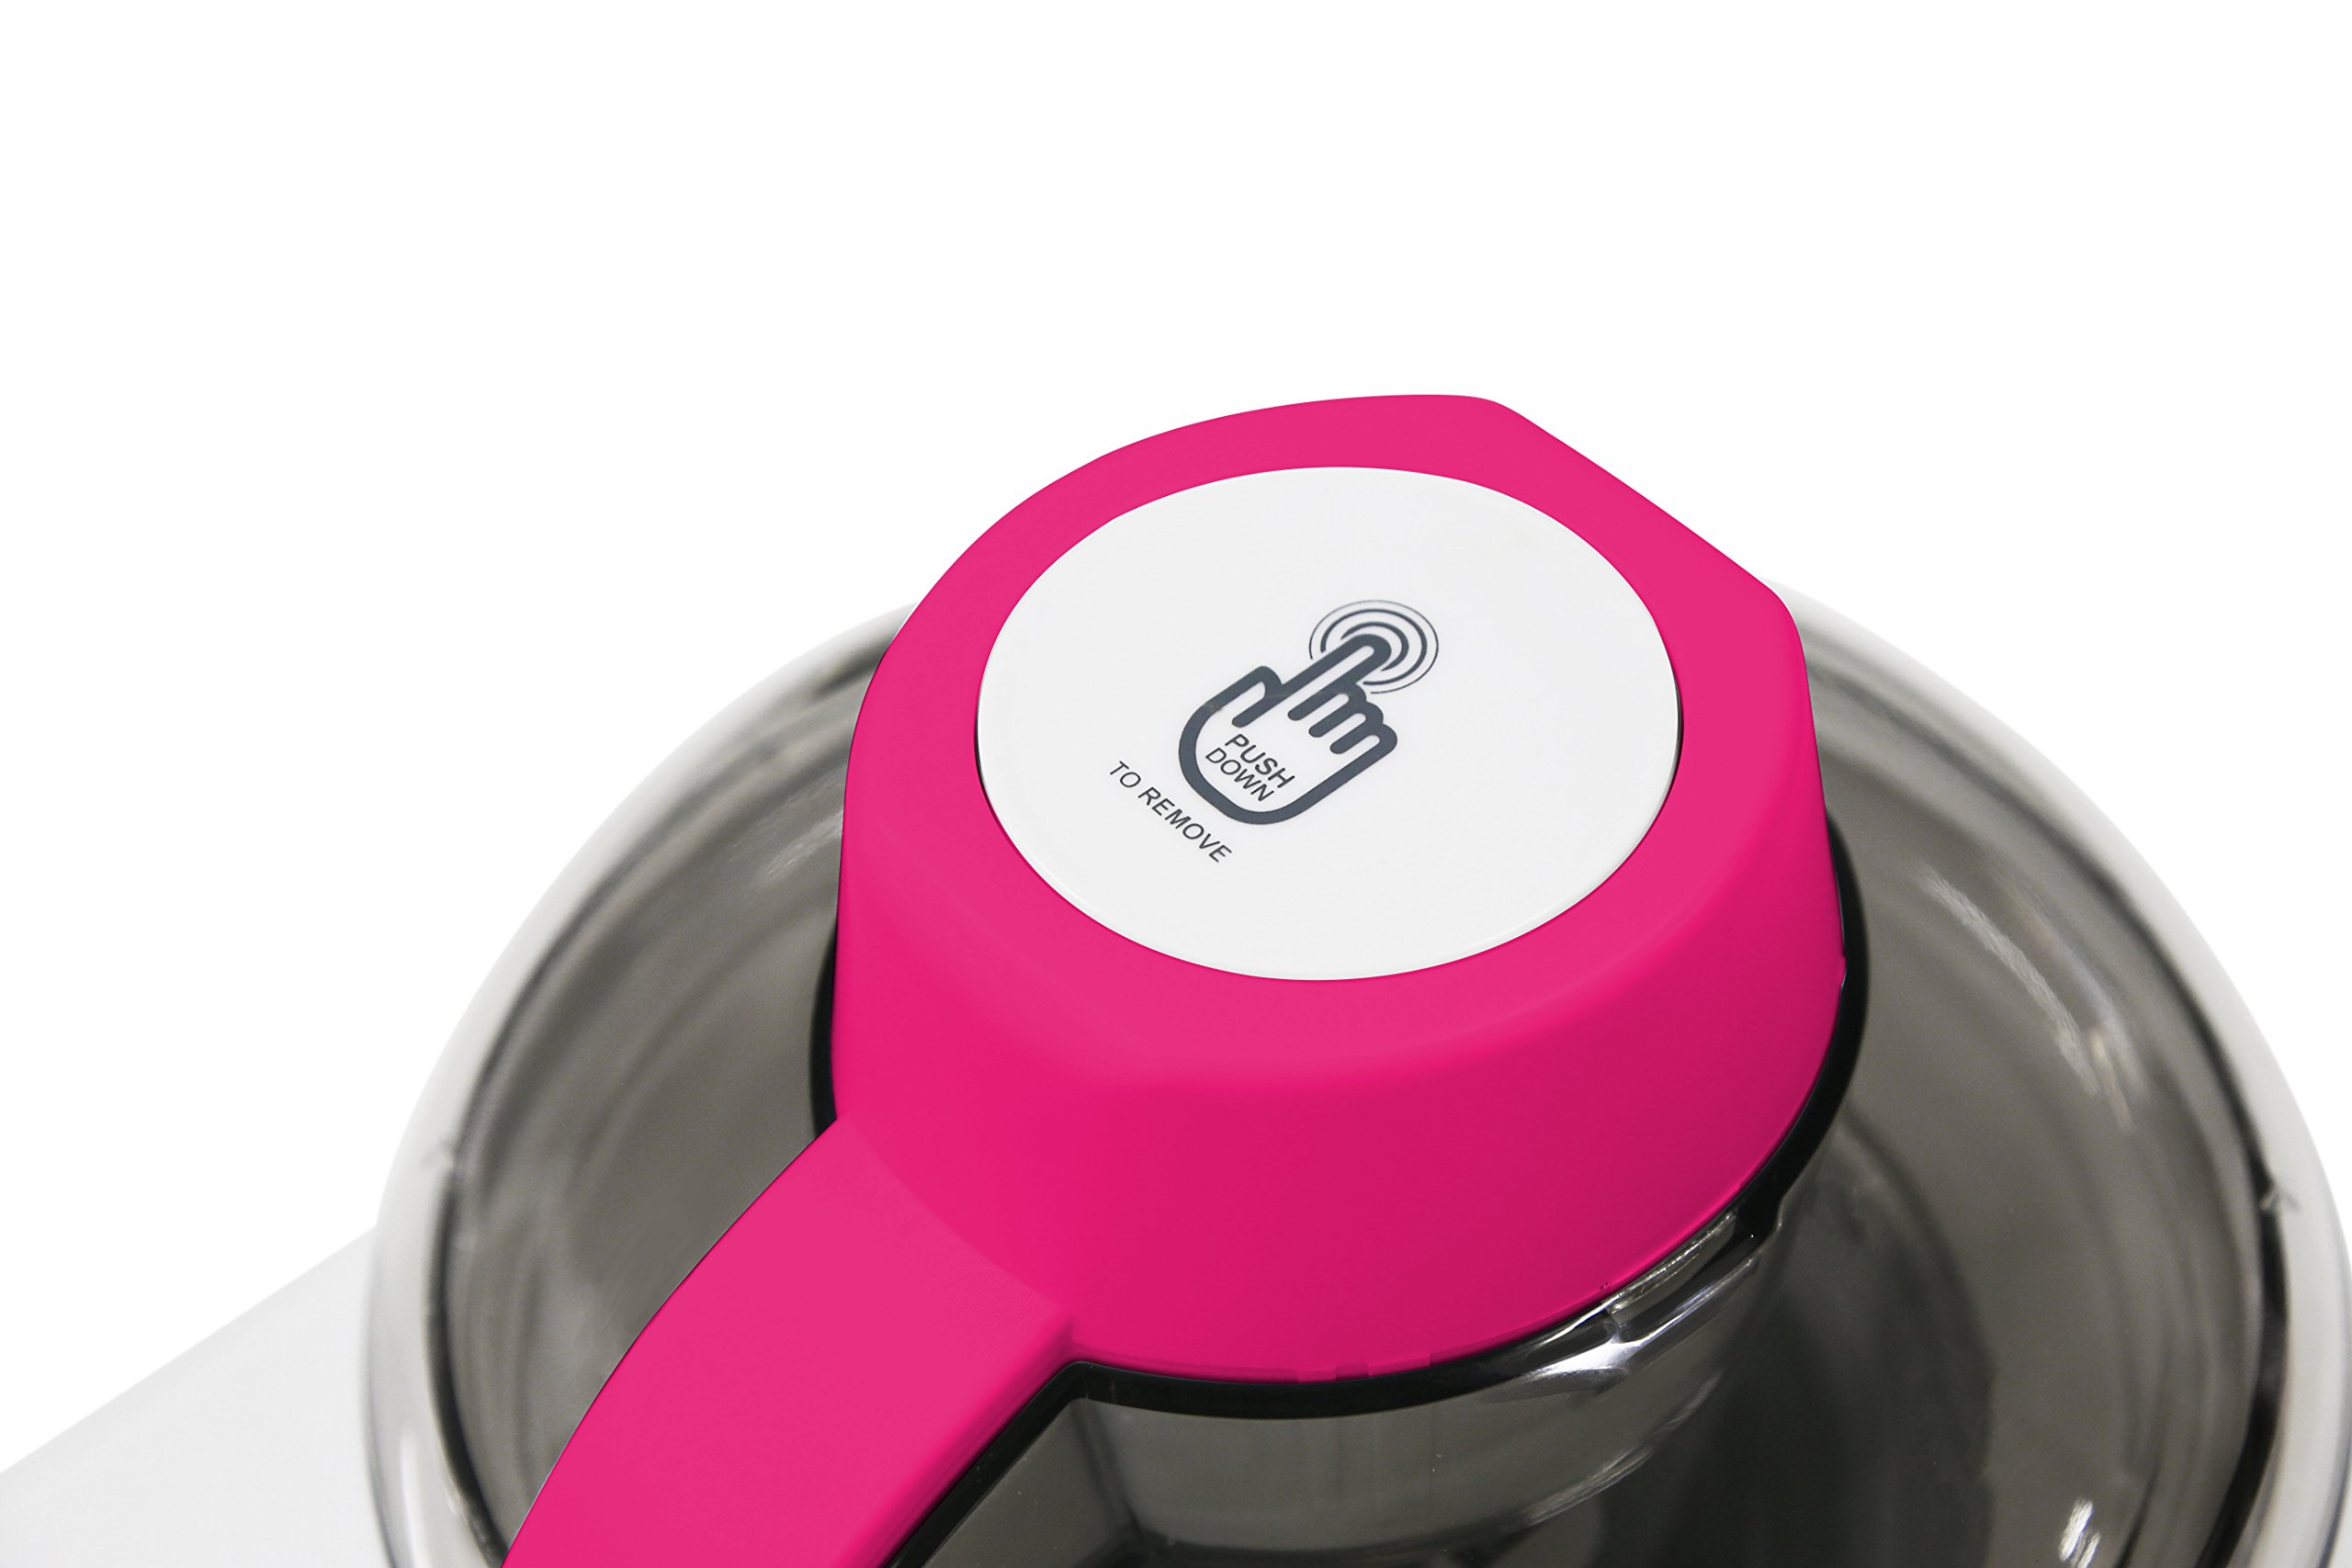 Mr. Freeze EIM-700BR Maxi-Matic 1.5 Pint Thermoelectric Ice Cream Maker, Berry by Mr. Freeze (Image #4)